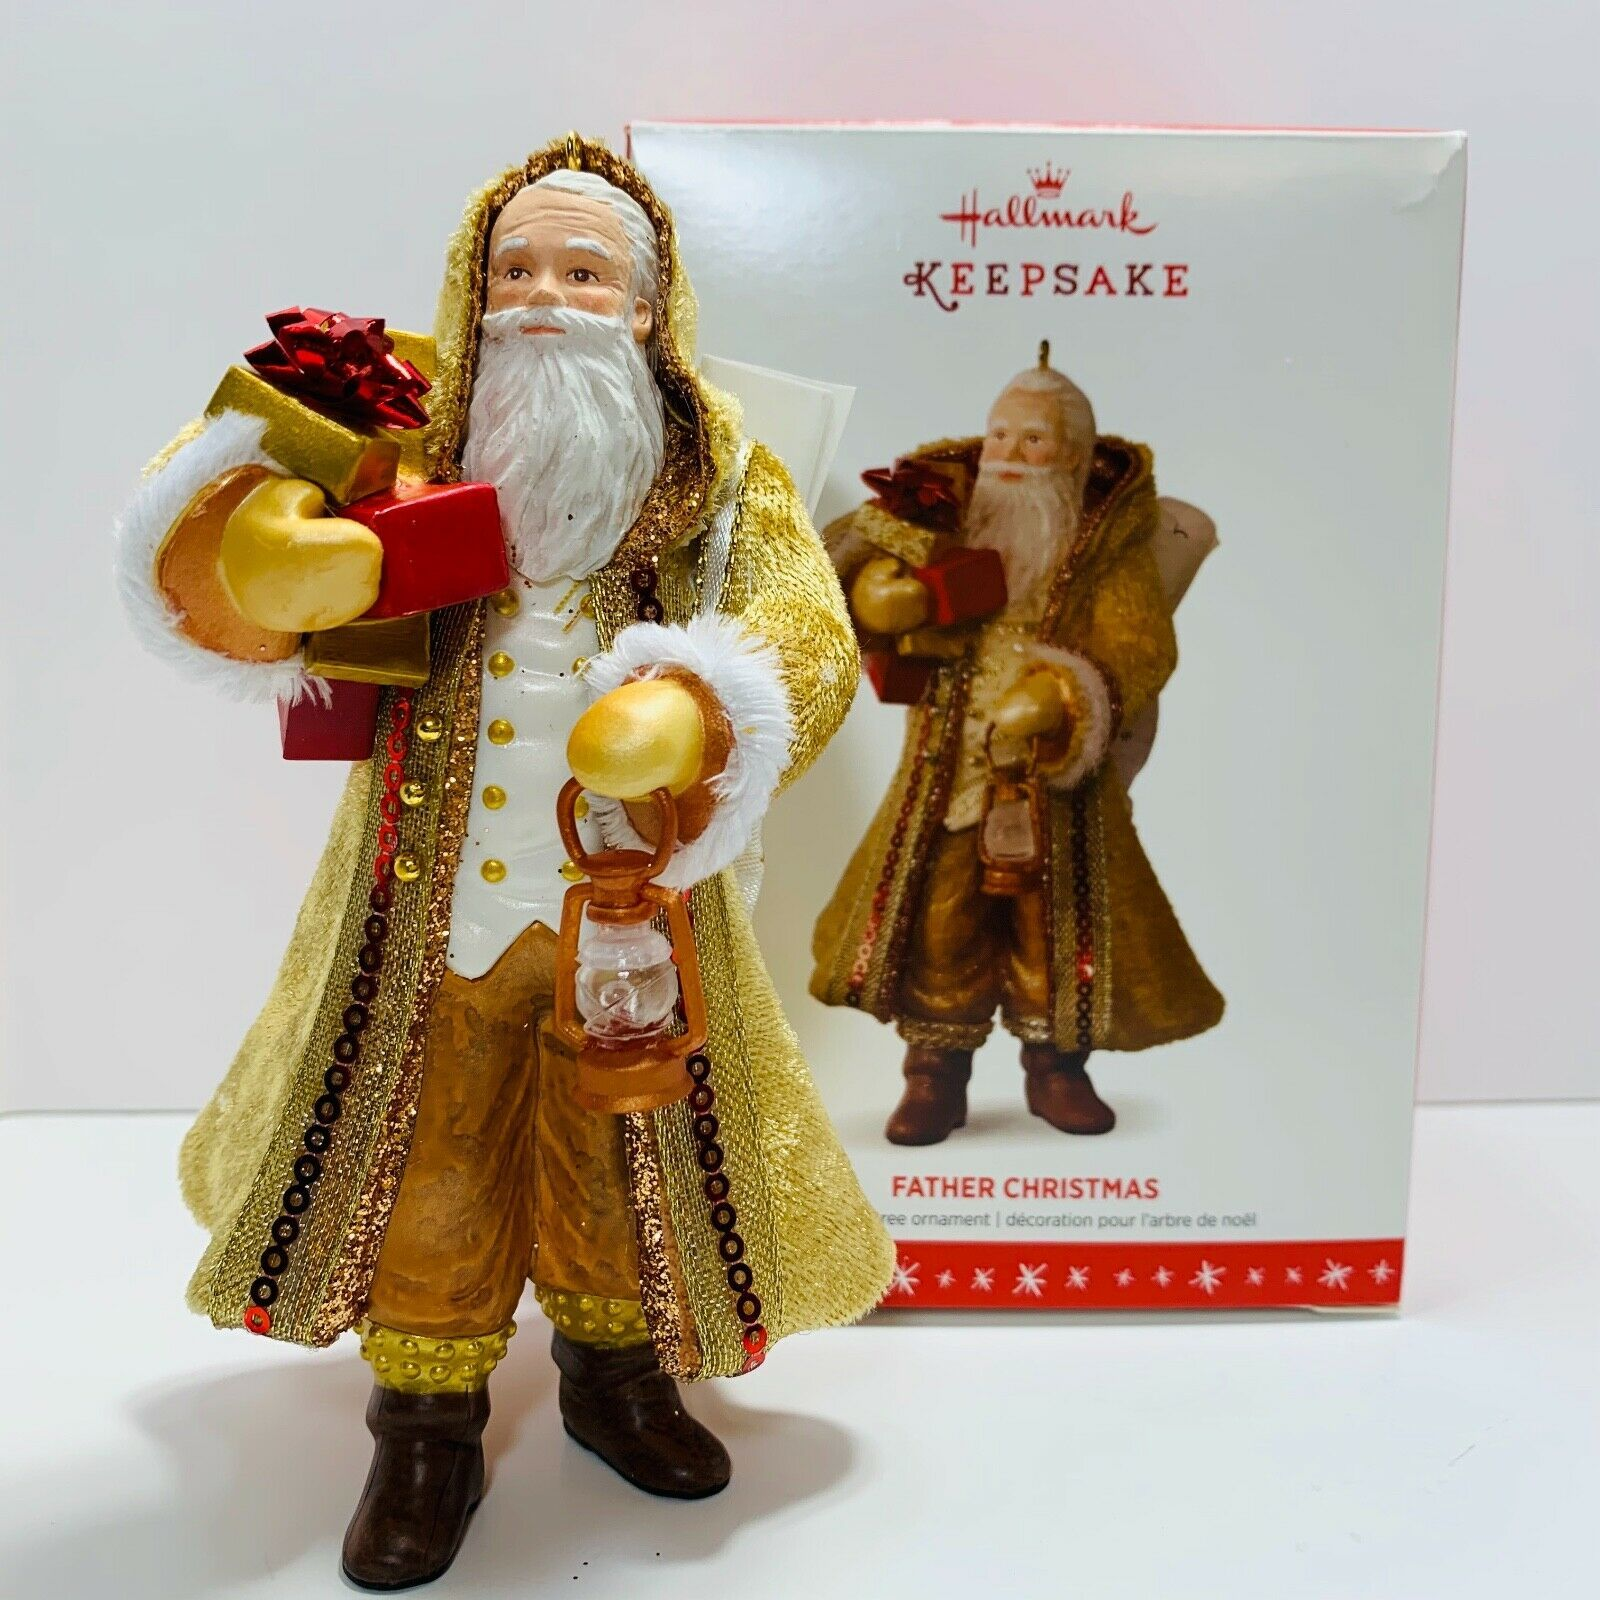 Primary image for Hallmark Keepsake Ornament Father Christmas  with Lantern 13th in Series 2016